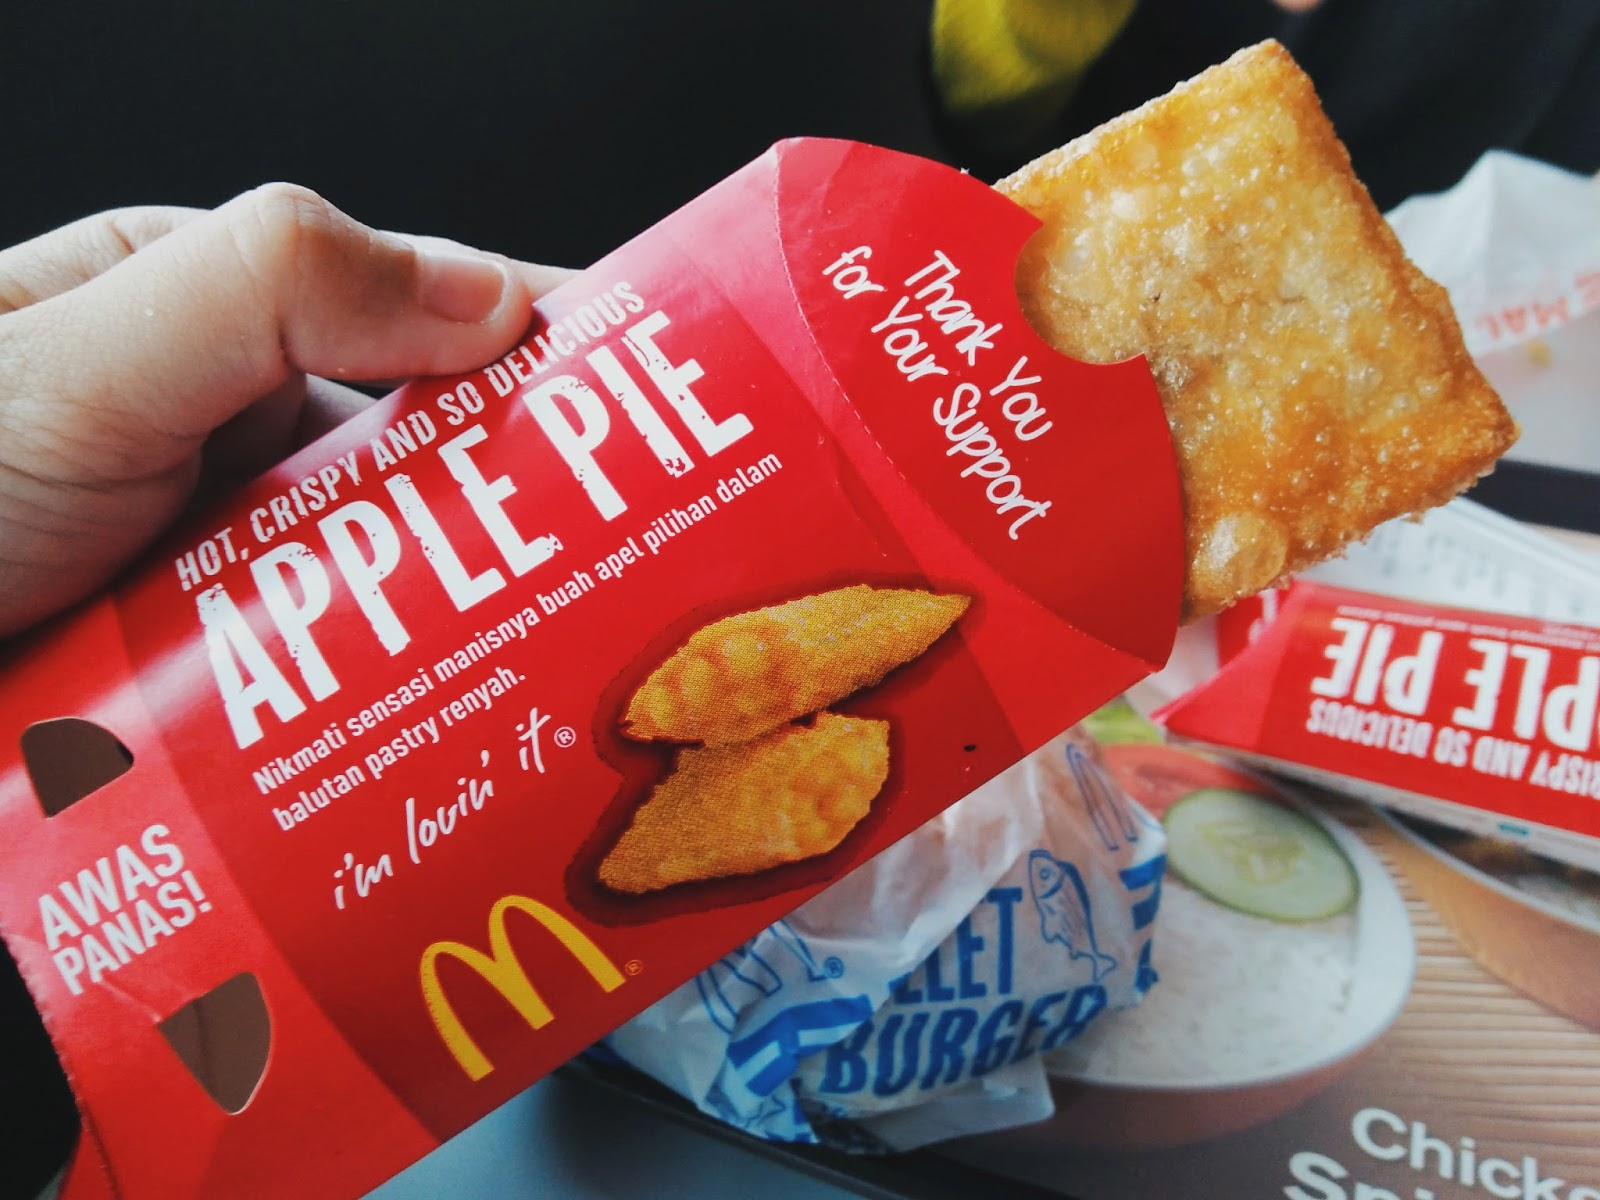 Apple Pie Mcdonald's Indonesia - Mcdonald's Indonesia Apple Pie